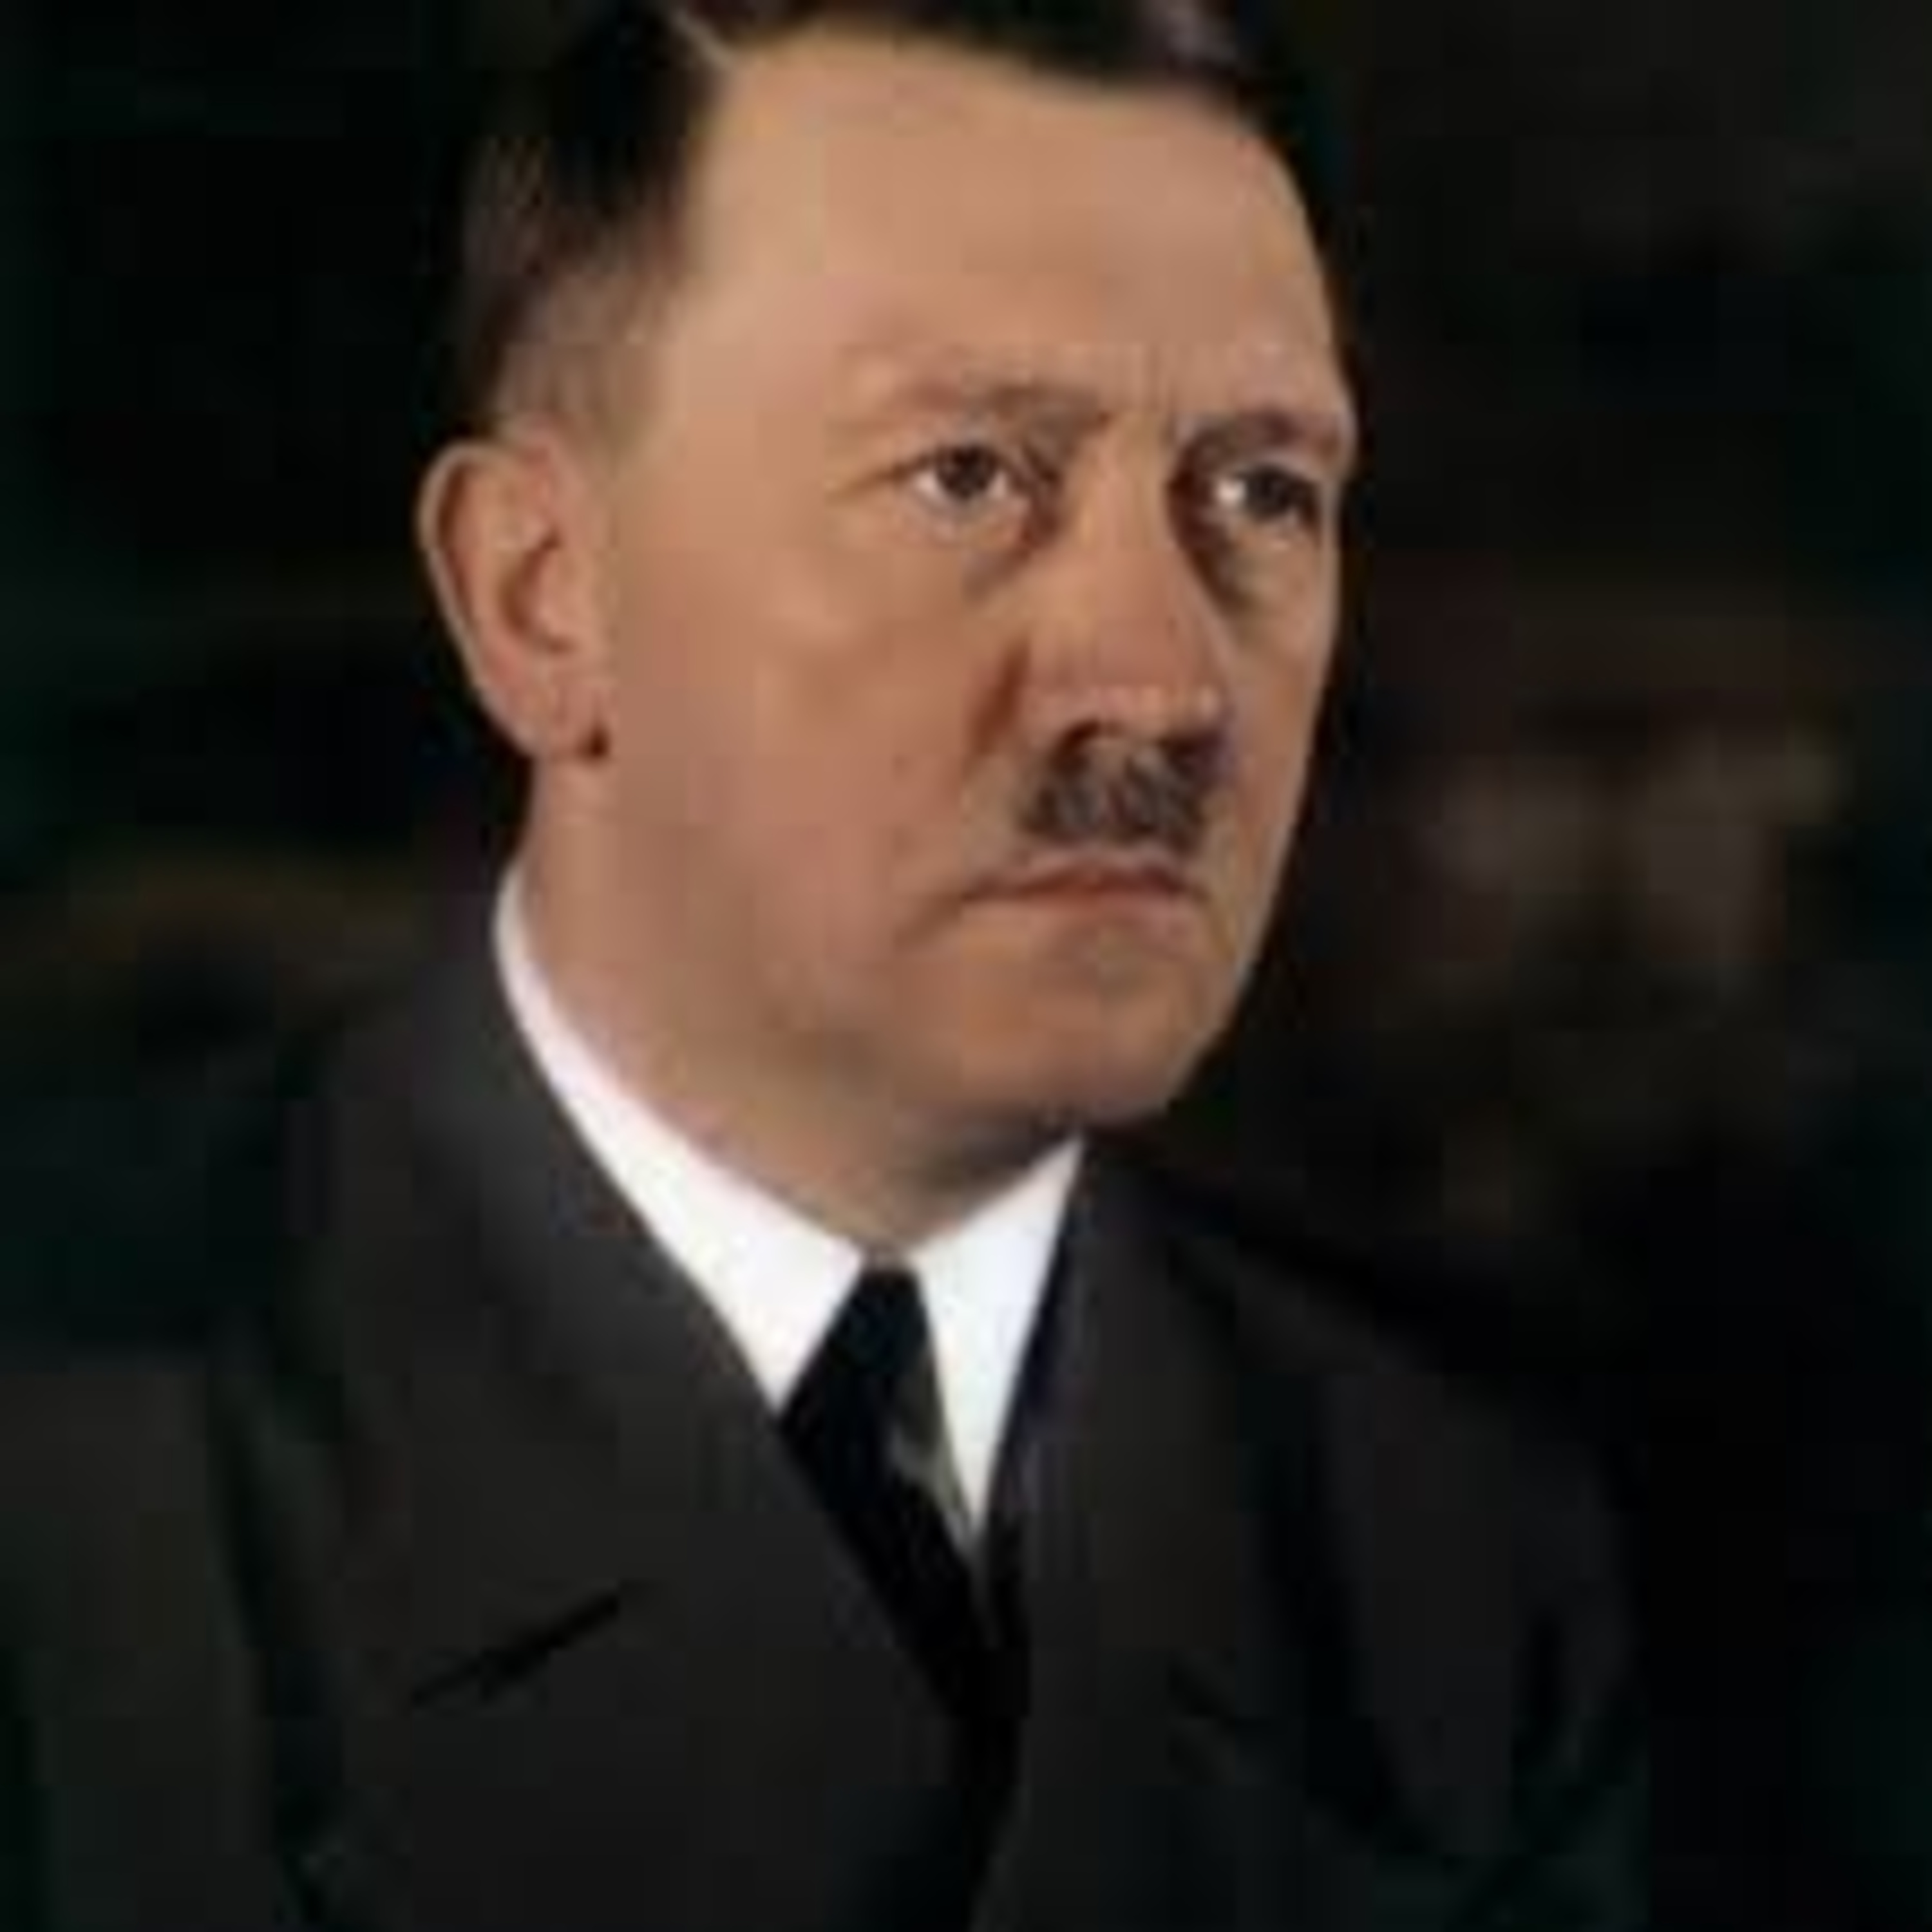 Adolf Hitler Part-1 (Rise of the most Powerful and Notorious Dictator of the 20th Century